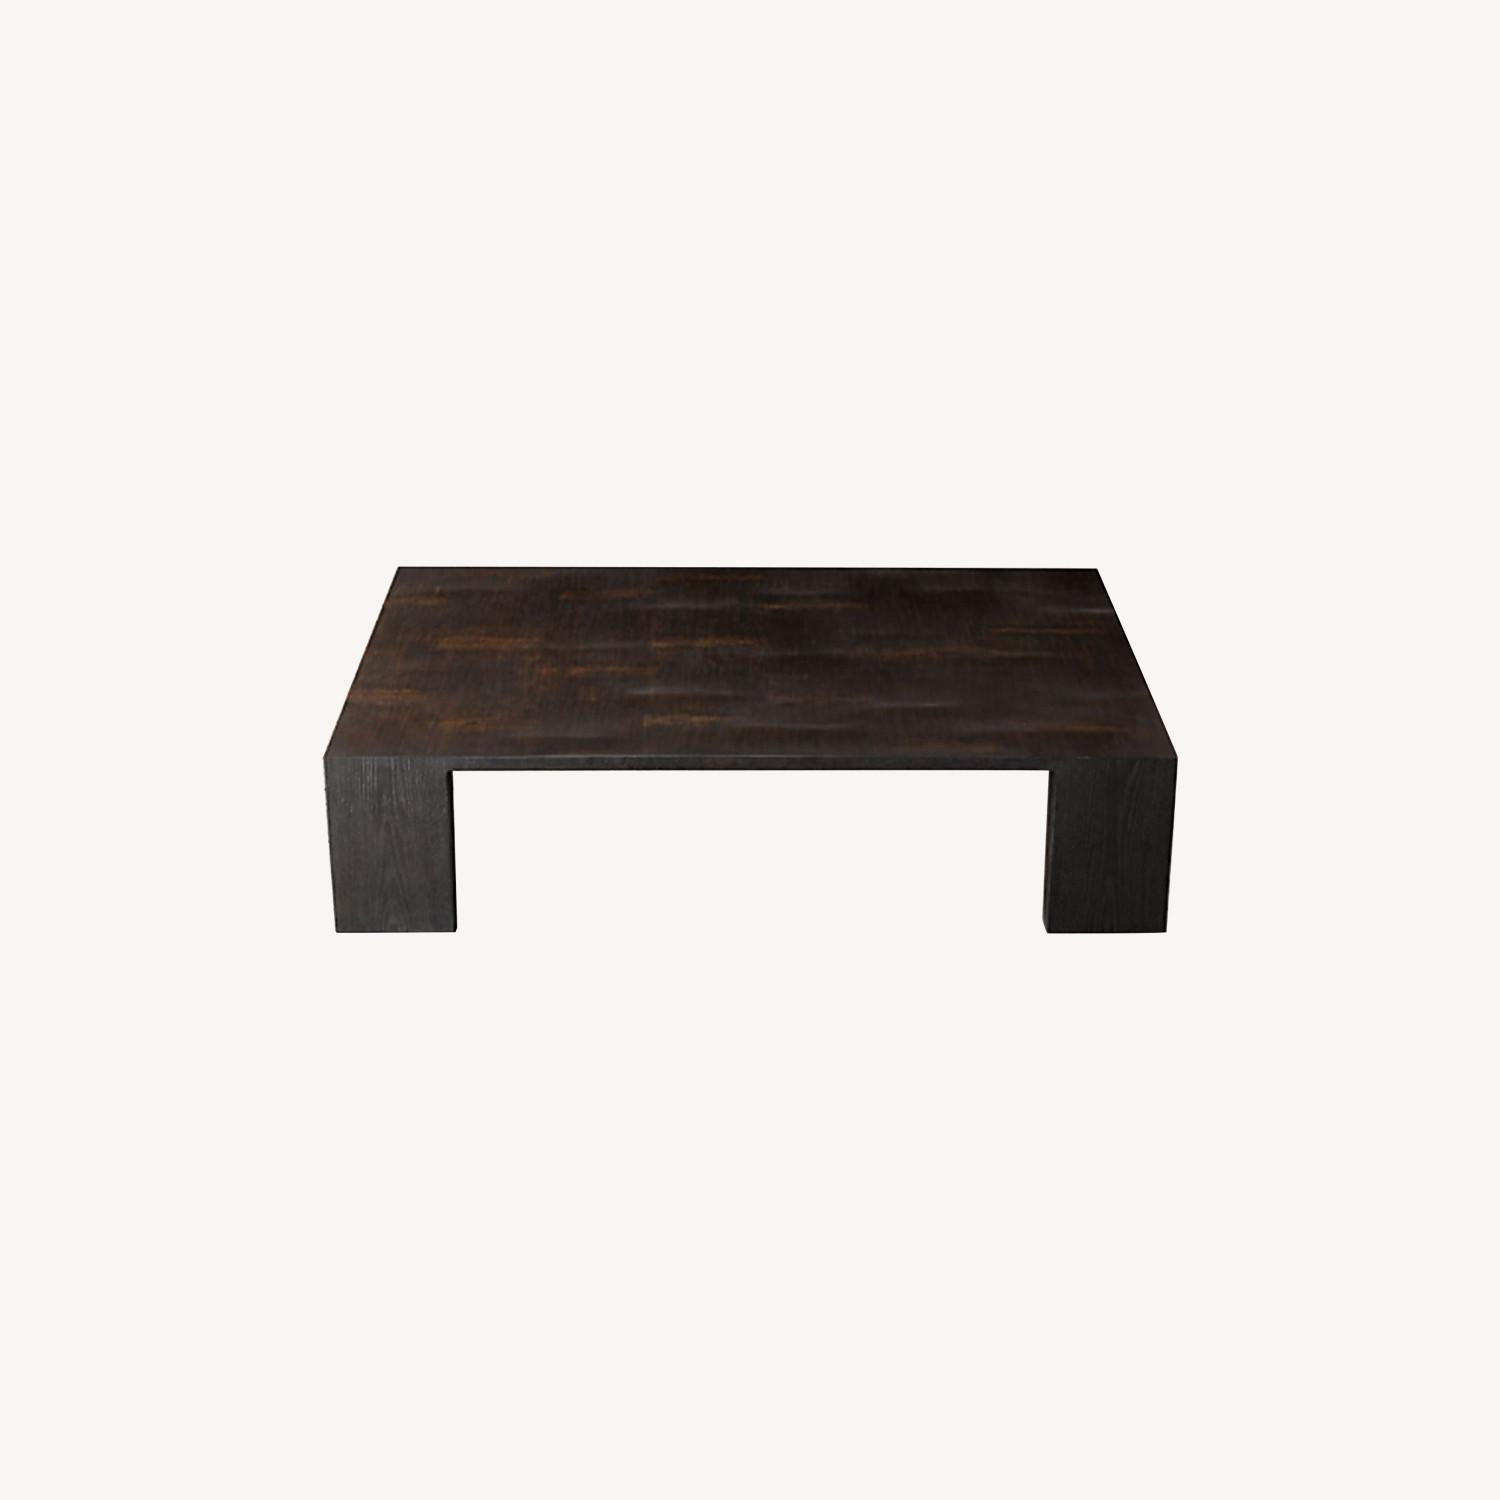 Restoration Hardware Wyeth Bamboo Rectangle Coffee Table - image-0